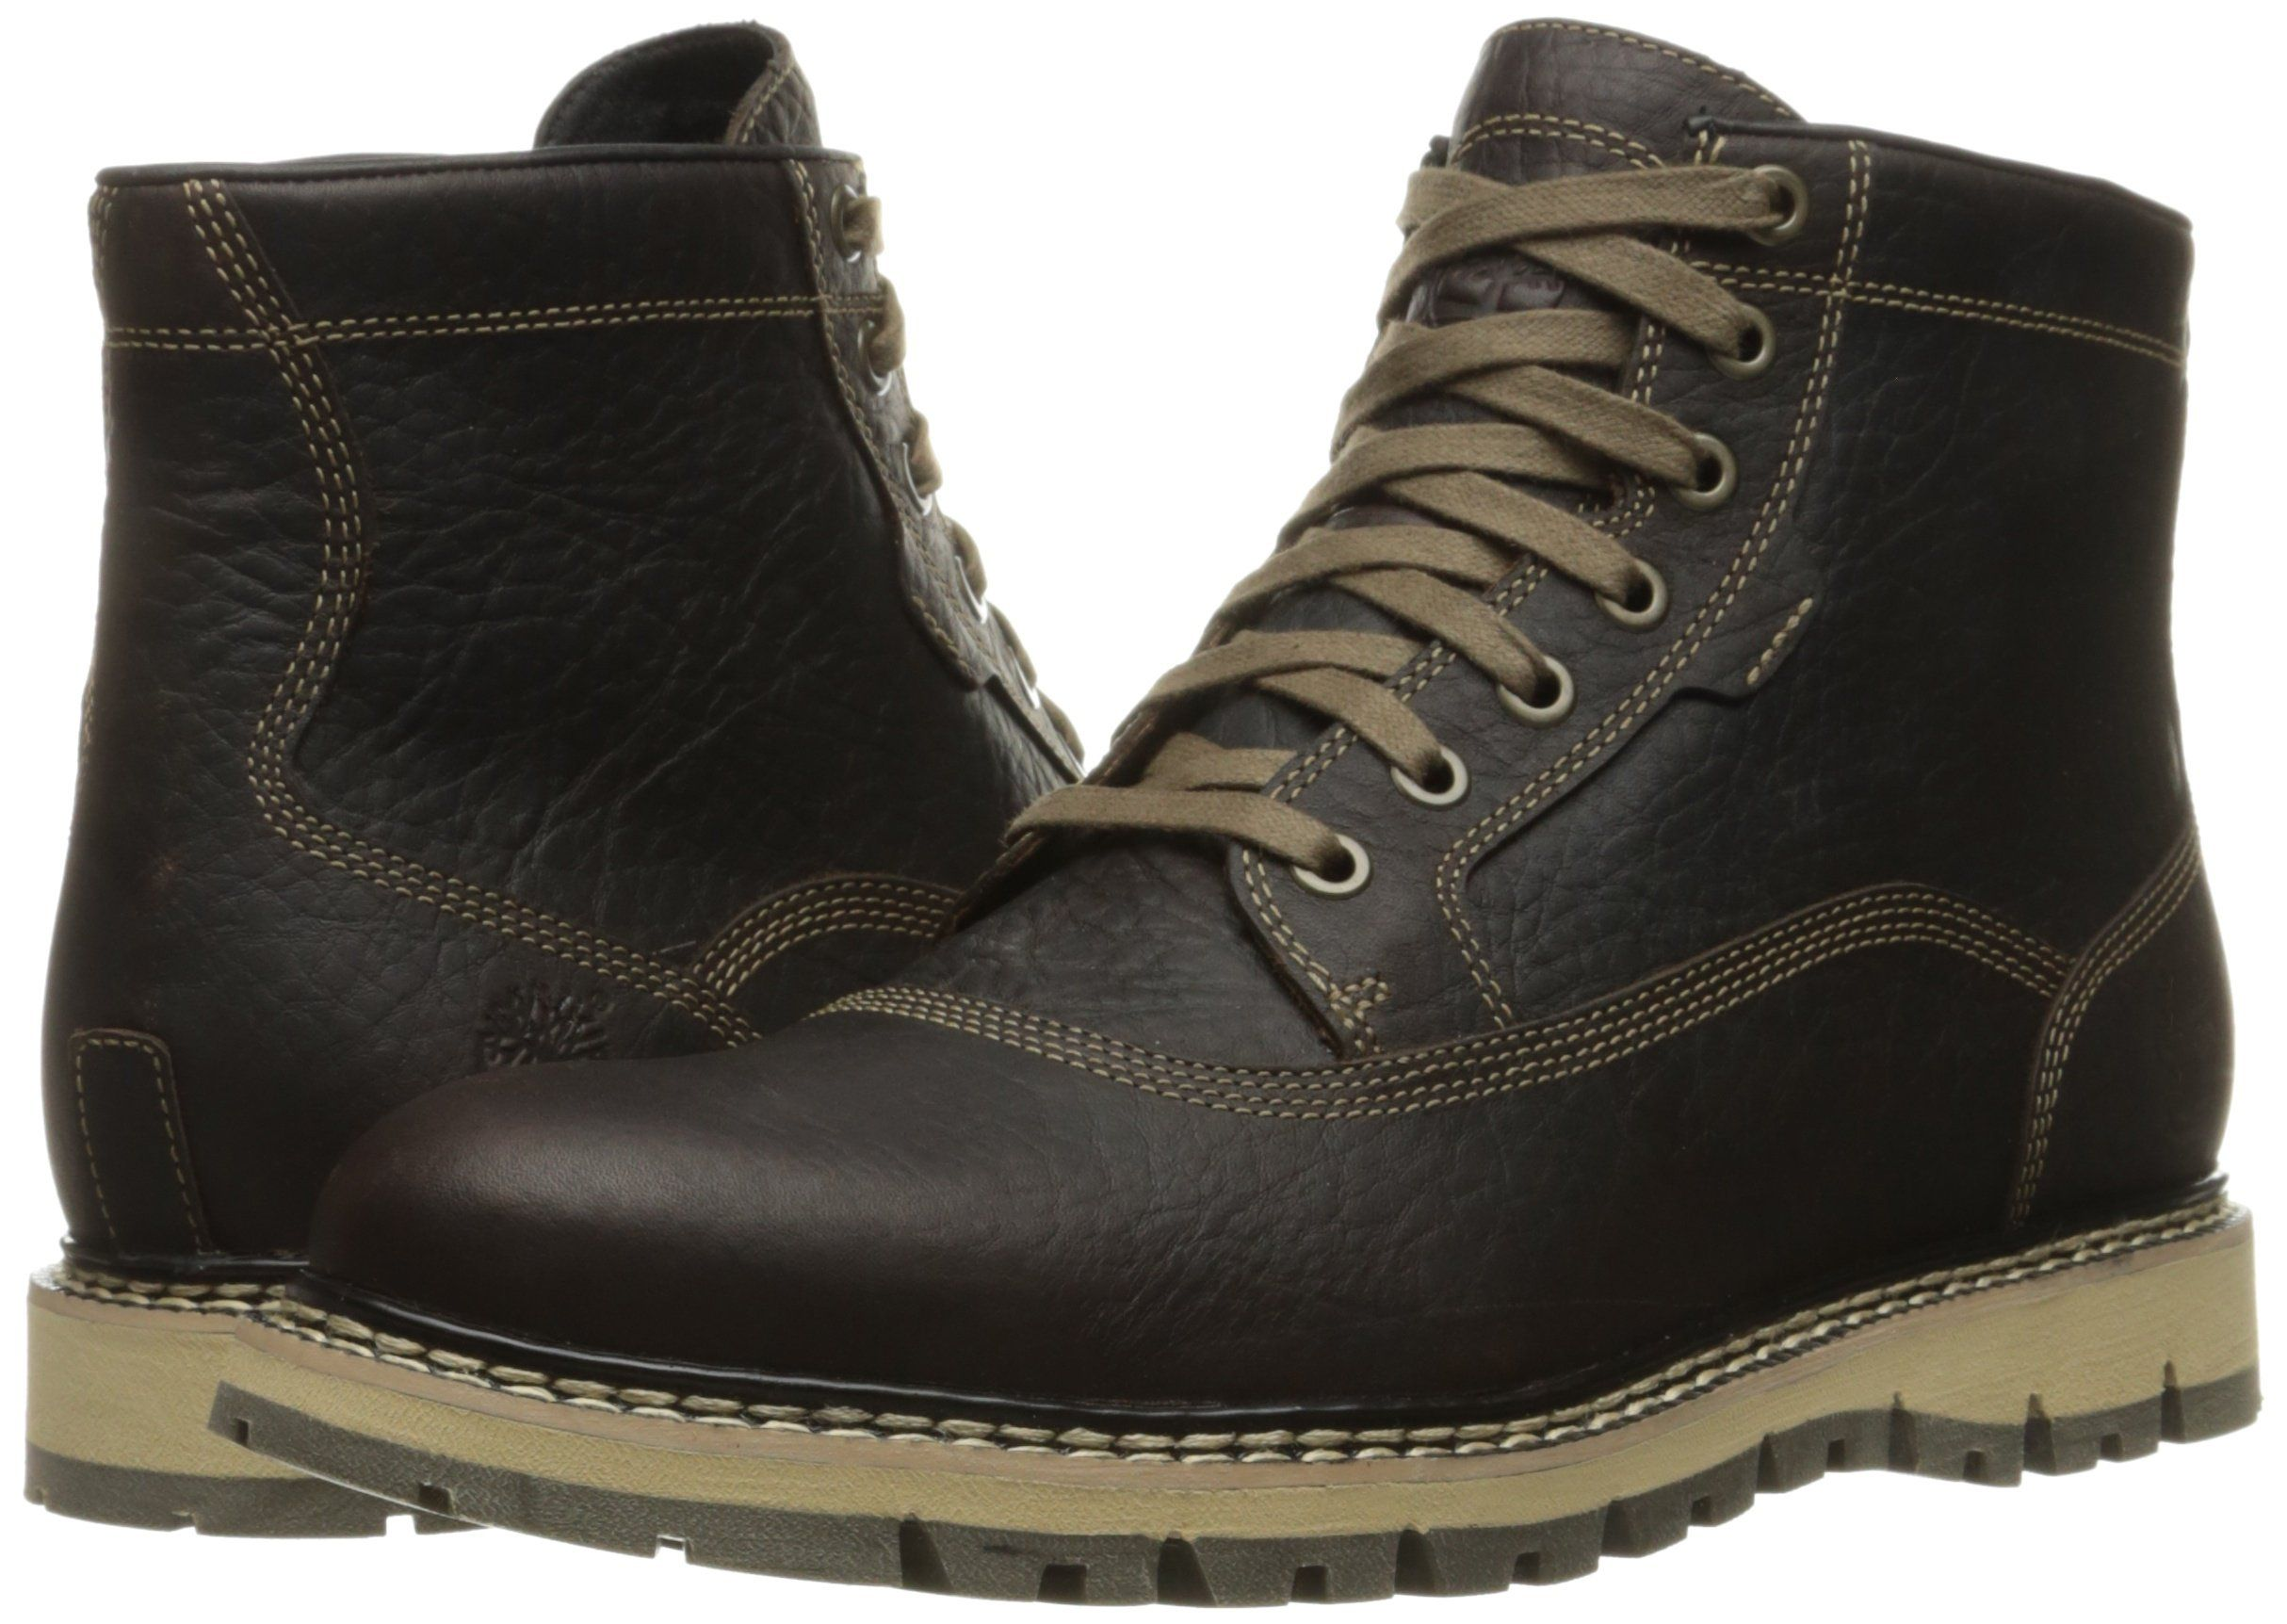 06dc9812f5be Timberland Mens Britton Hill Cap Toe Chukka WP Boot Dark Brown Full Grain  9.5 M US -- You can find more details by visiting the image link.